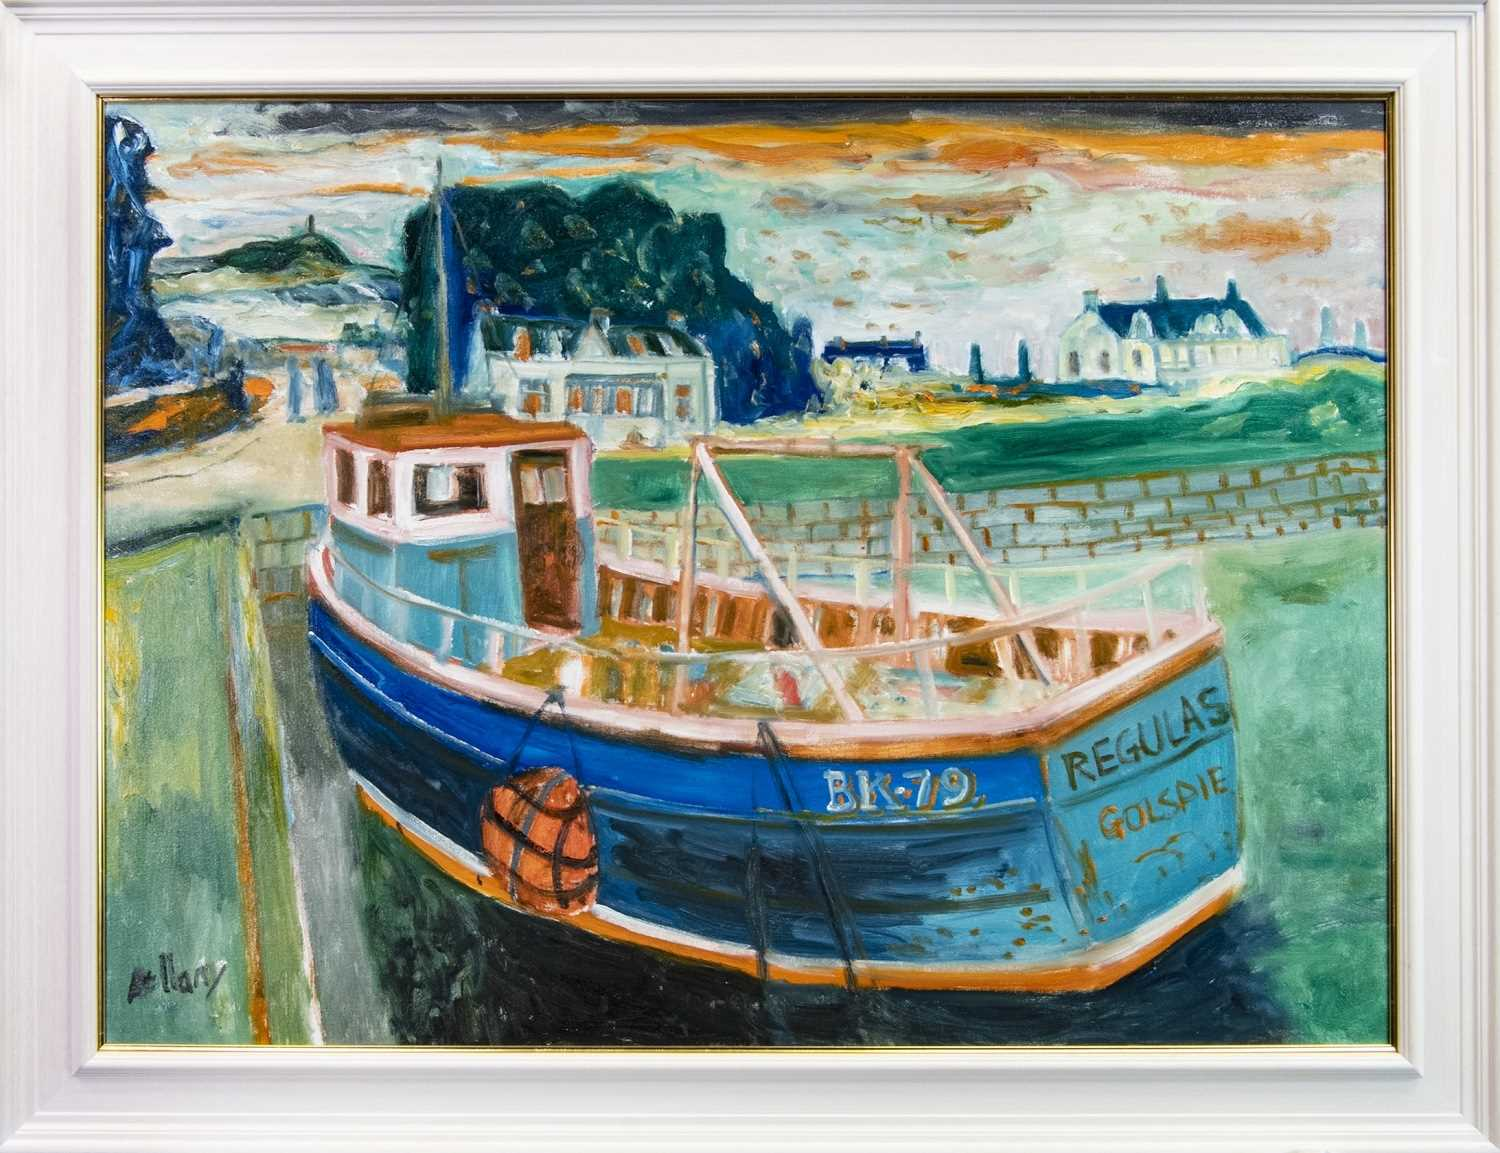 Lot 506 - REGULAS, GOLSPIE, AN OIL BY JOHN BELLANY